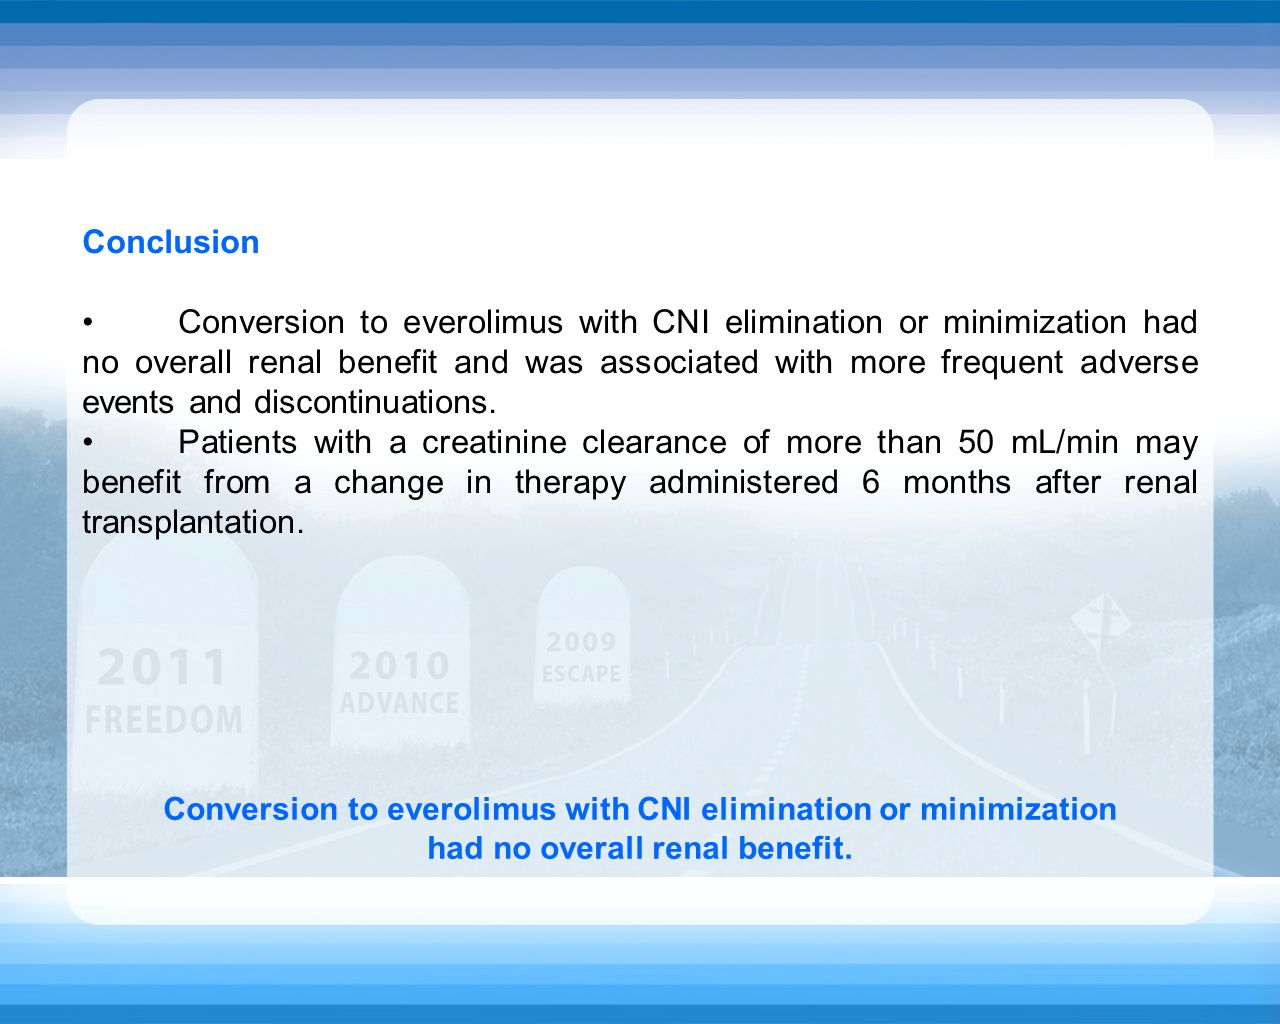 Conclusion Conversion to everolimus with CNI elimination or minimization had no overall renal benefit and was associated with more frequent adverse events and discontinuations.